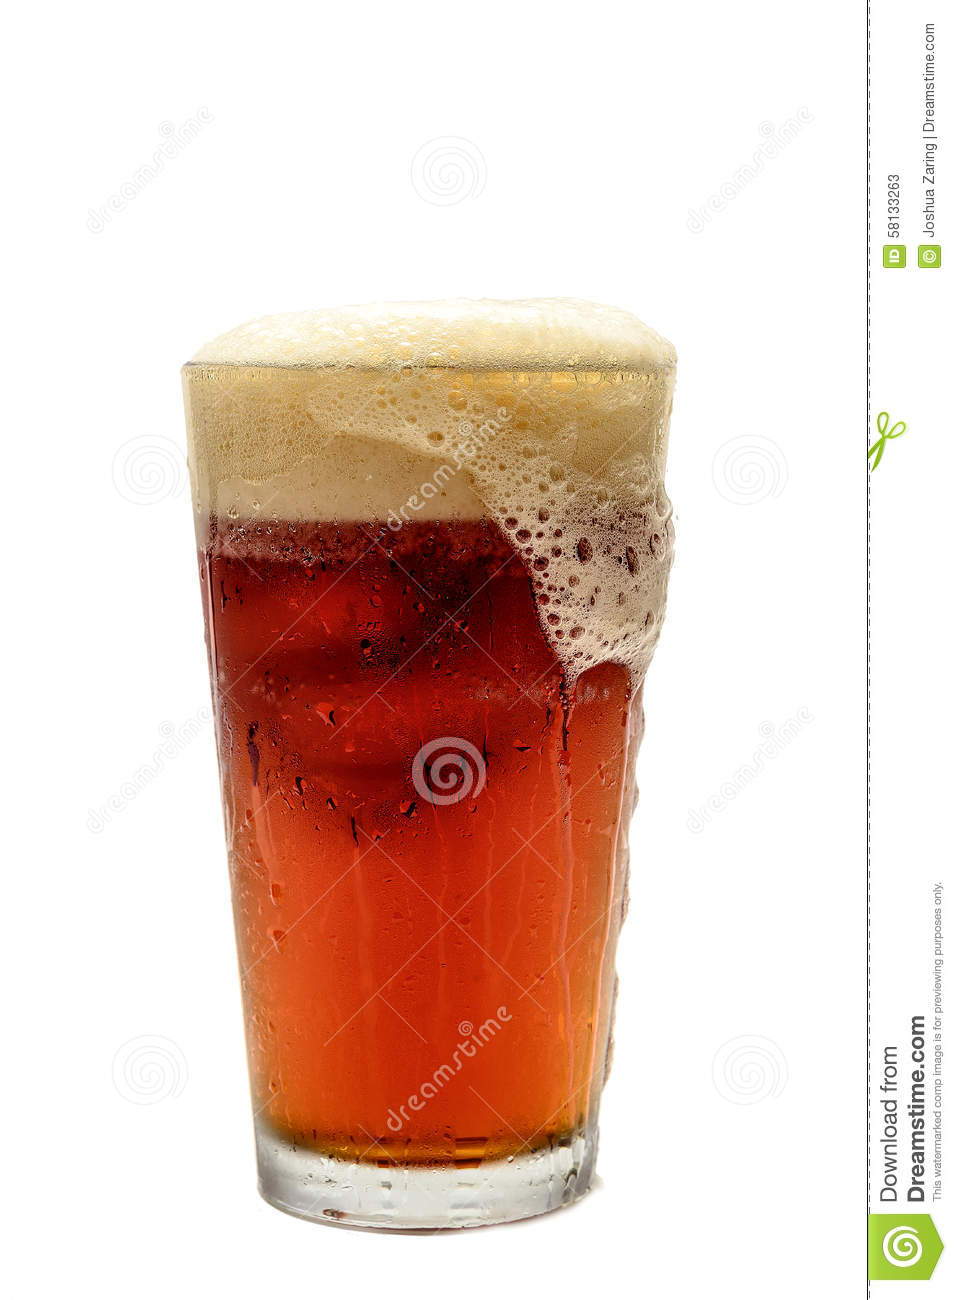 Beer Foaming Over Glass Stock Photo Image 58133263